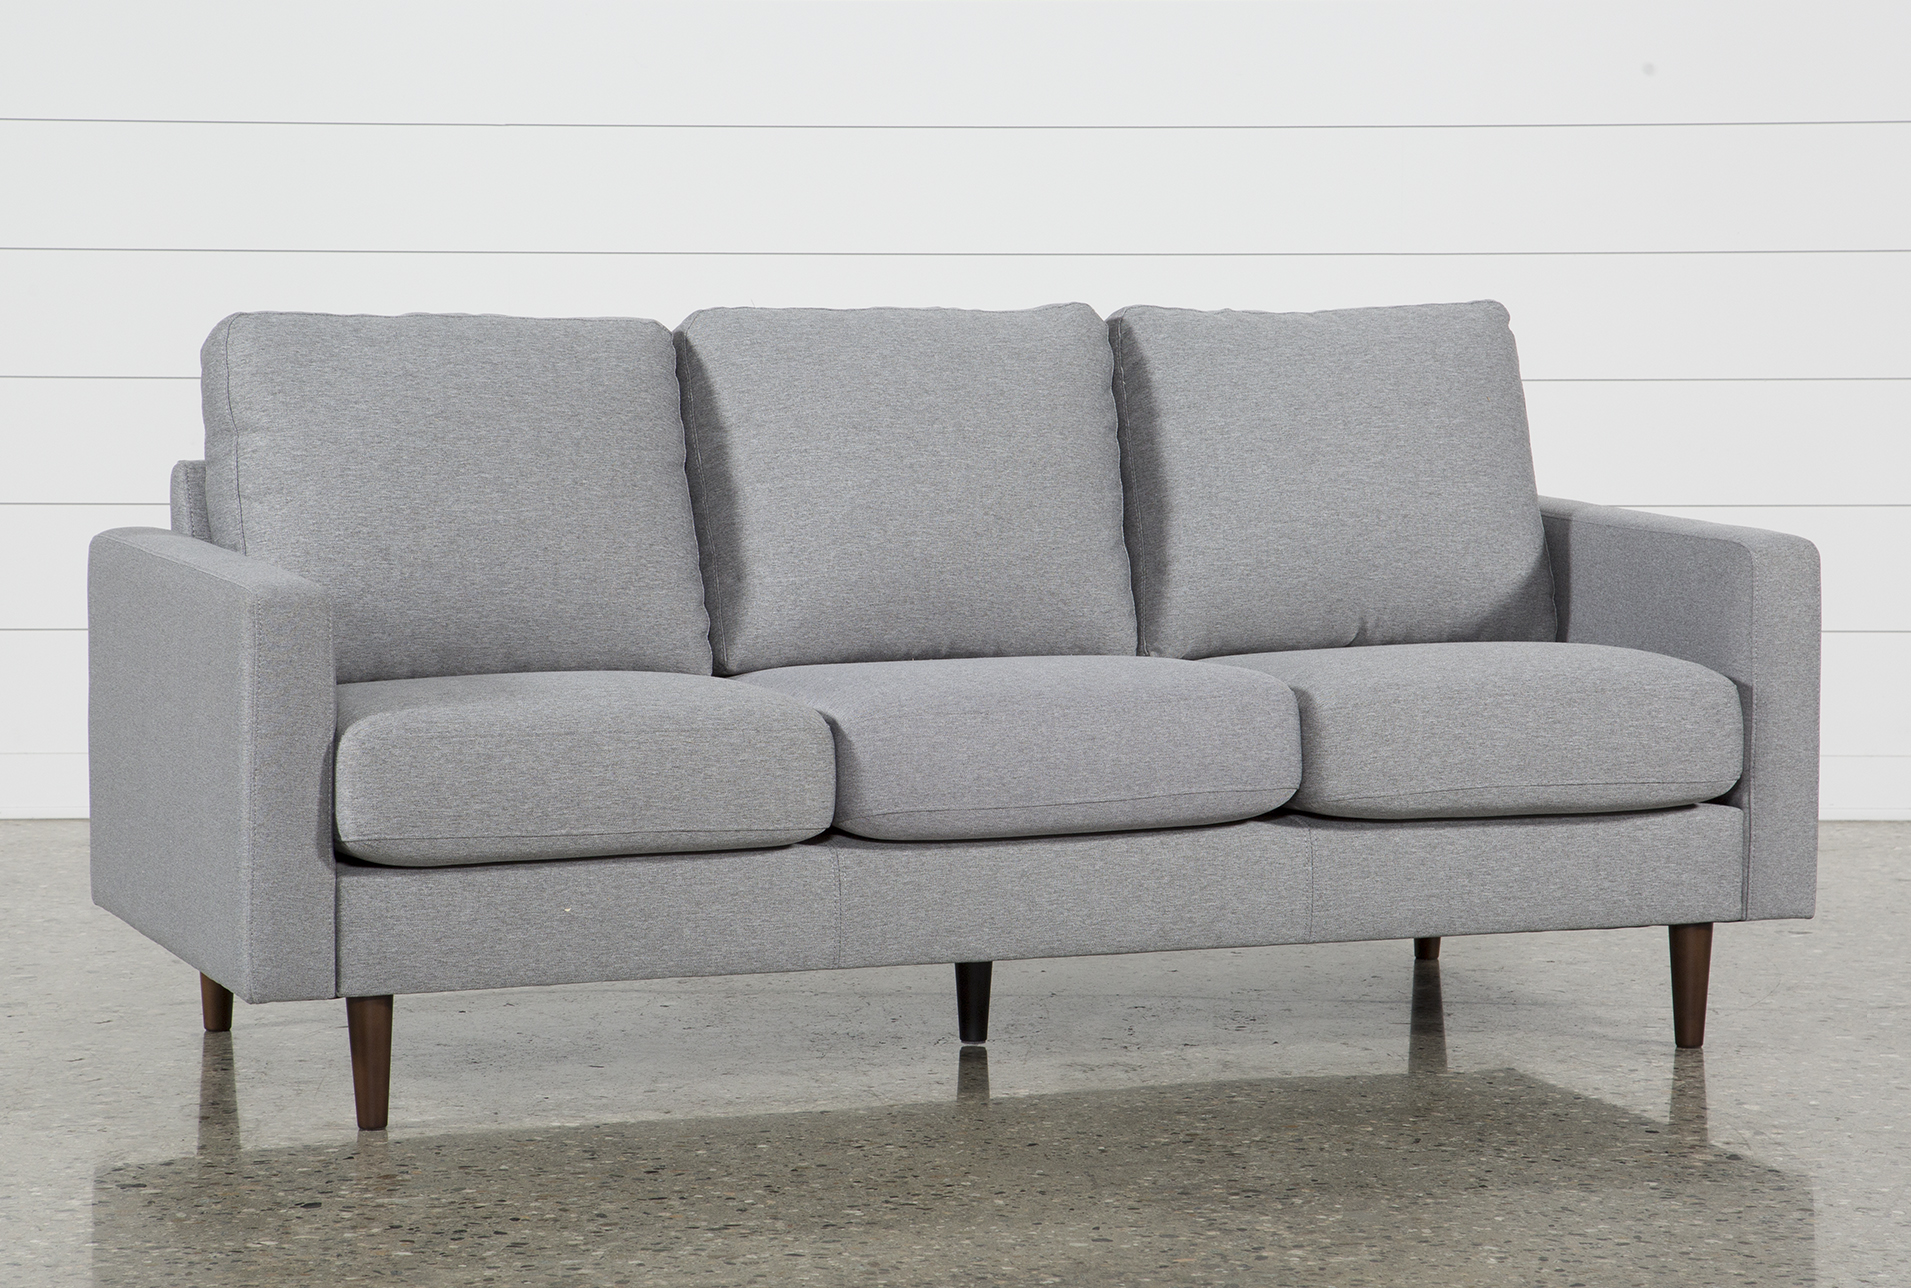 grey fabric sofas couches free assembly with delivery living rh livingspaces com small grey sofas small grey sofa with chaise